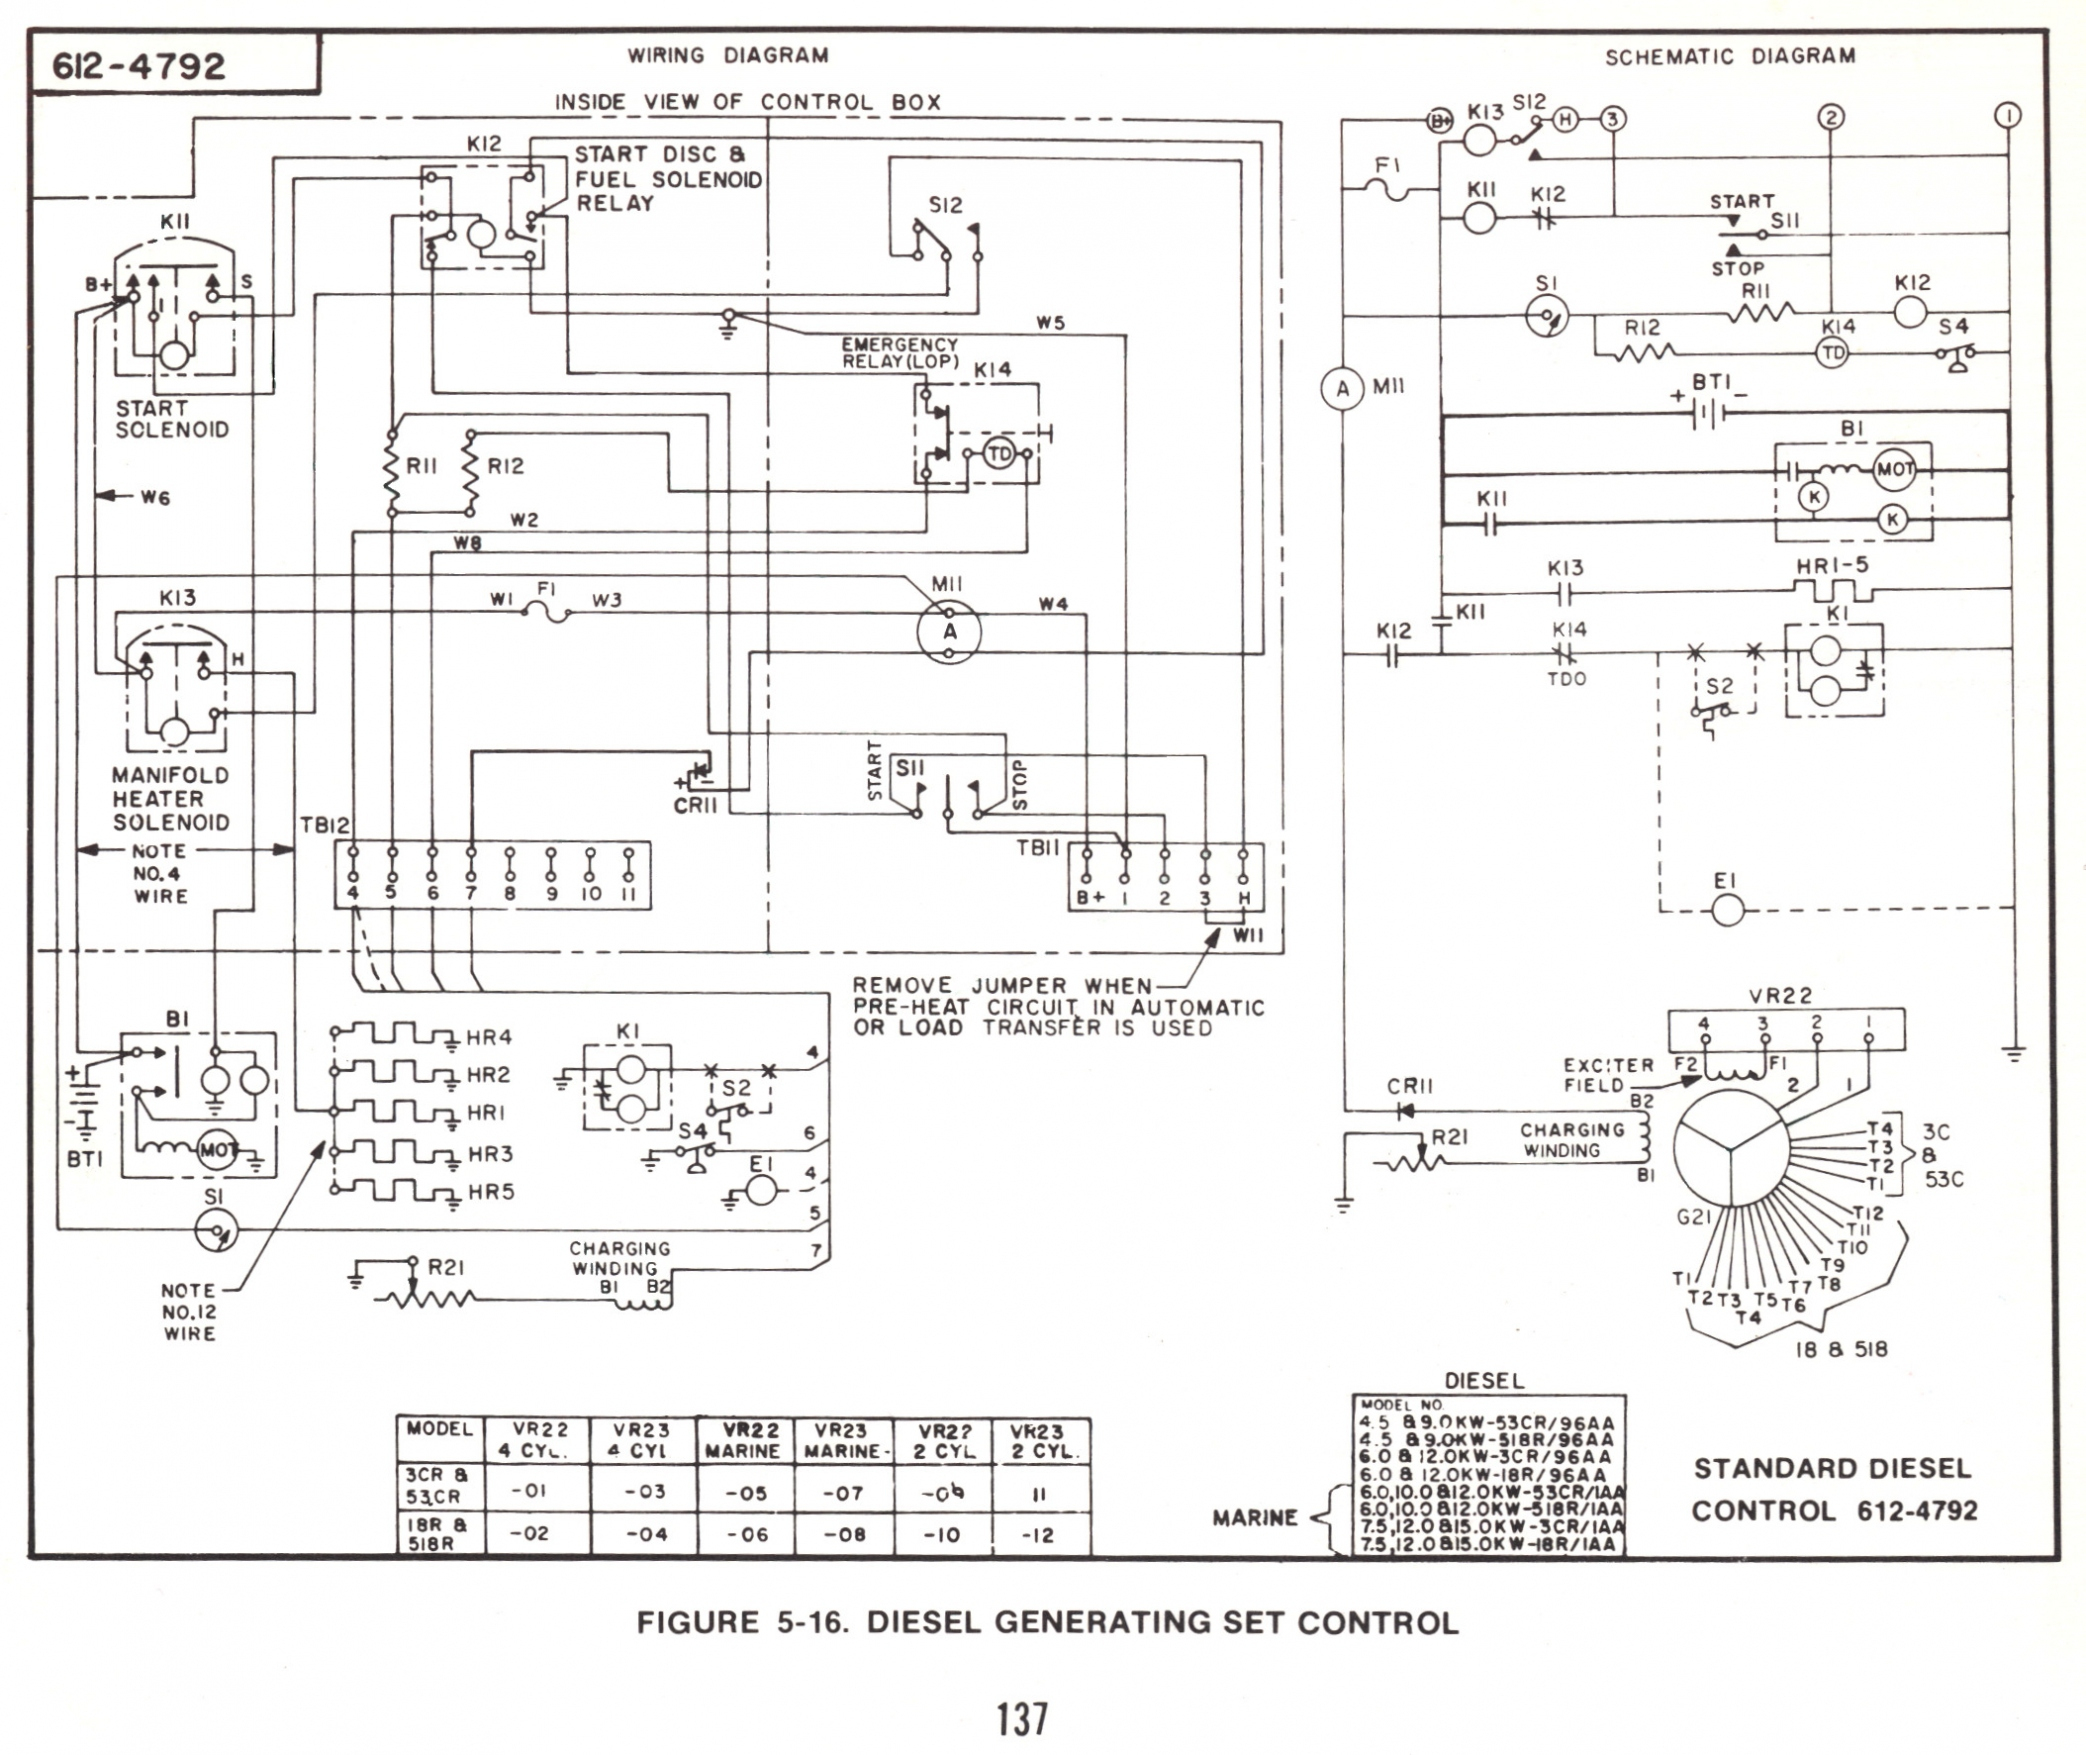 6 5 Onan Rv Generator Wiring Diagram - Today Wiring Diagram - Onan 4.0 Rv Genset Wiring Diagram